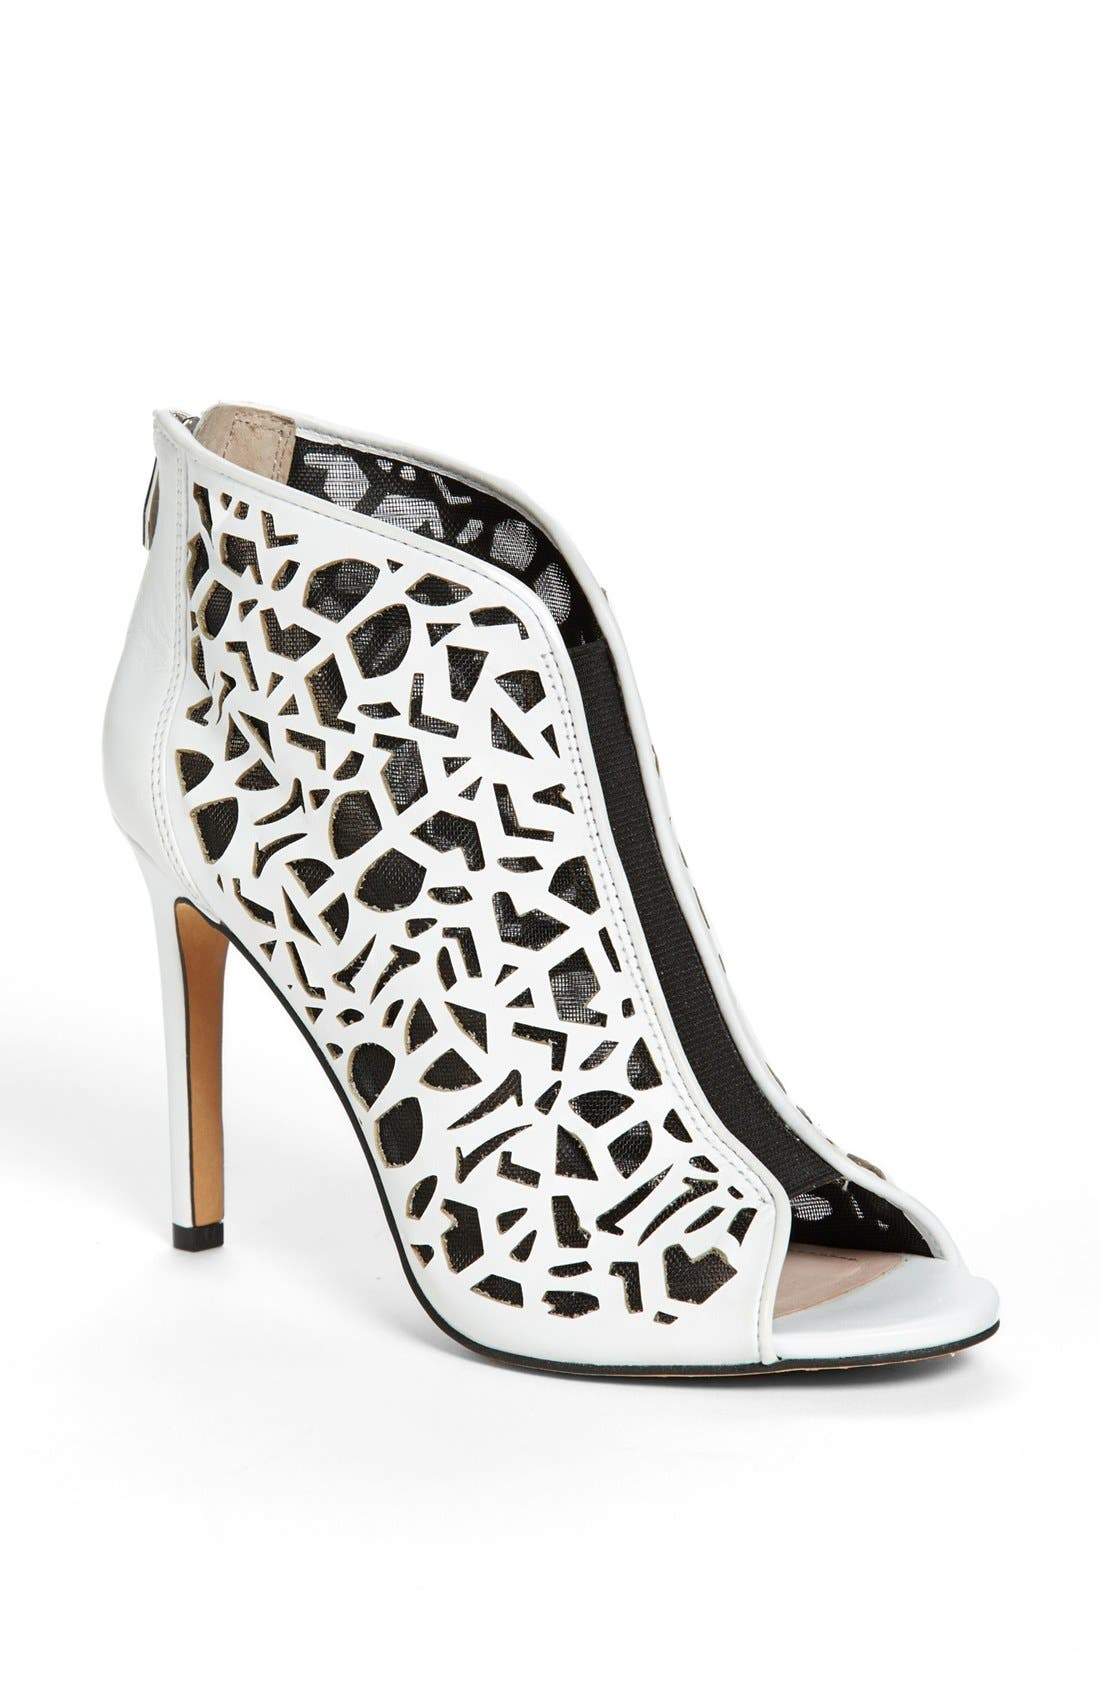 Main Image - Vince Camuto 'Kalista' Peep Toe Leather Bootie